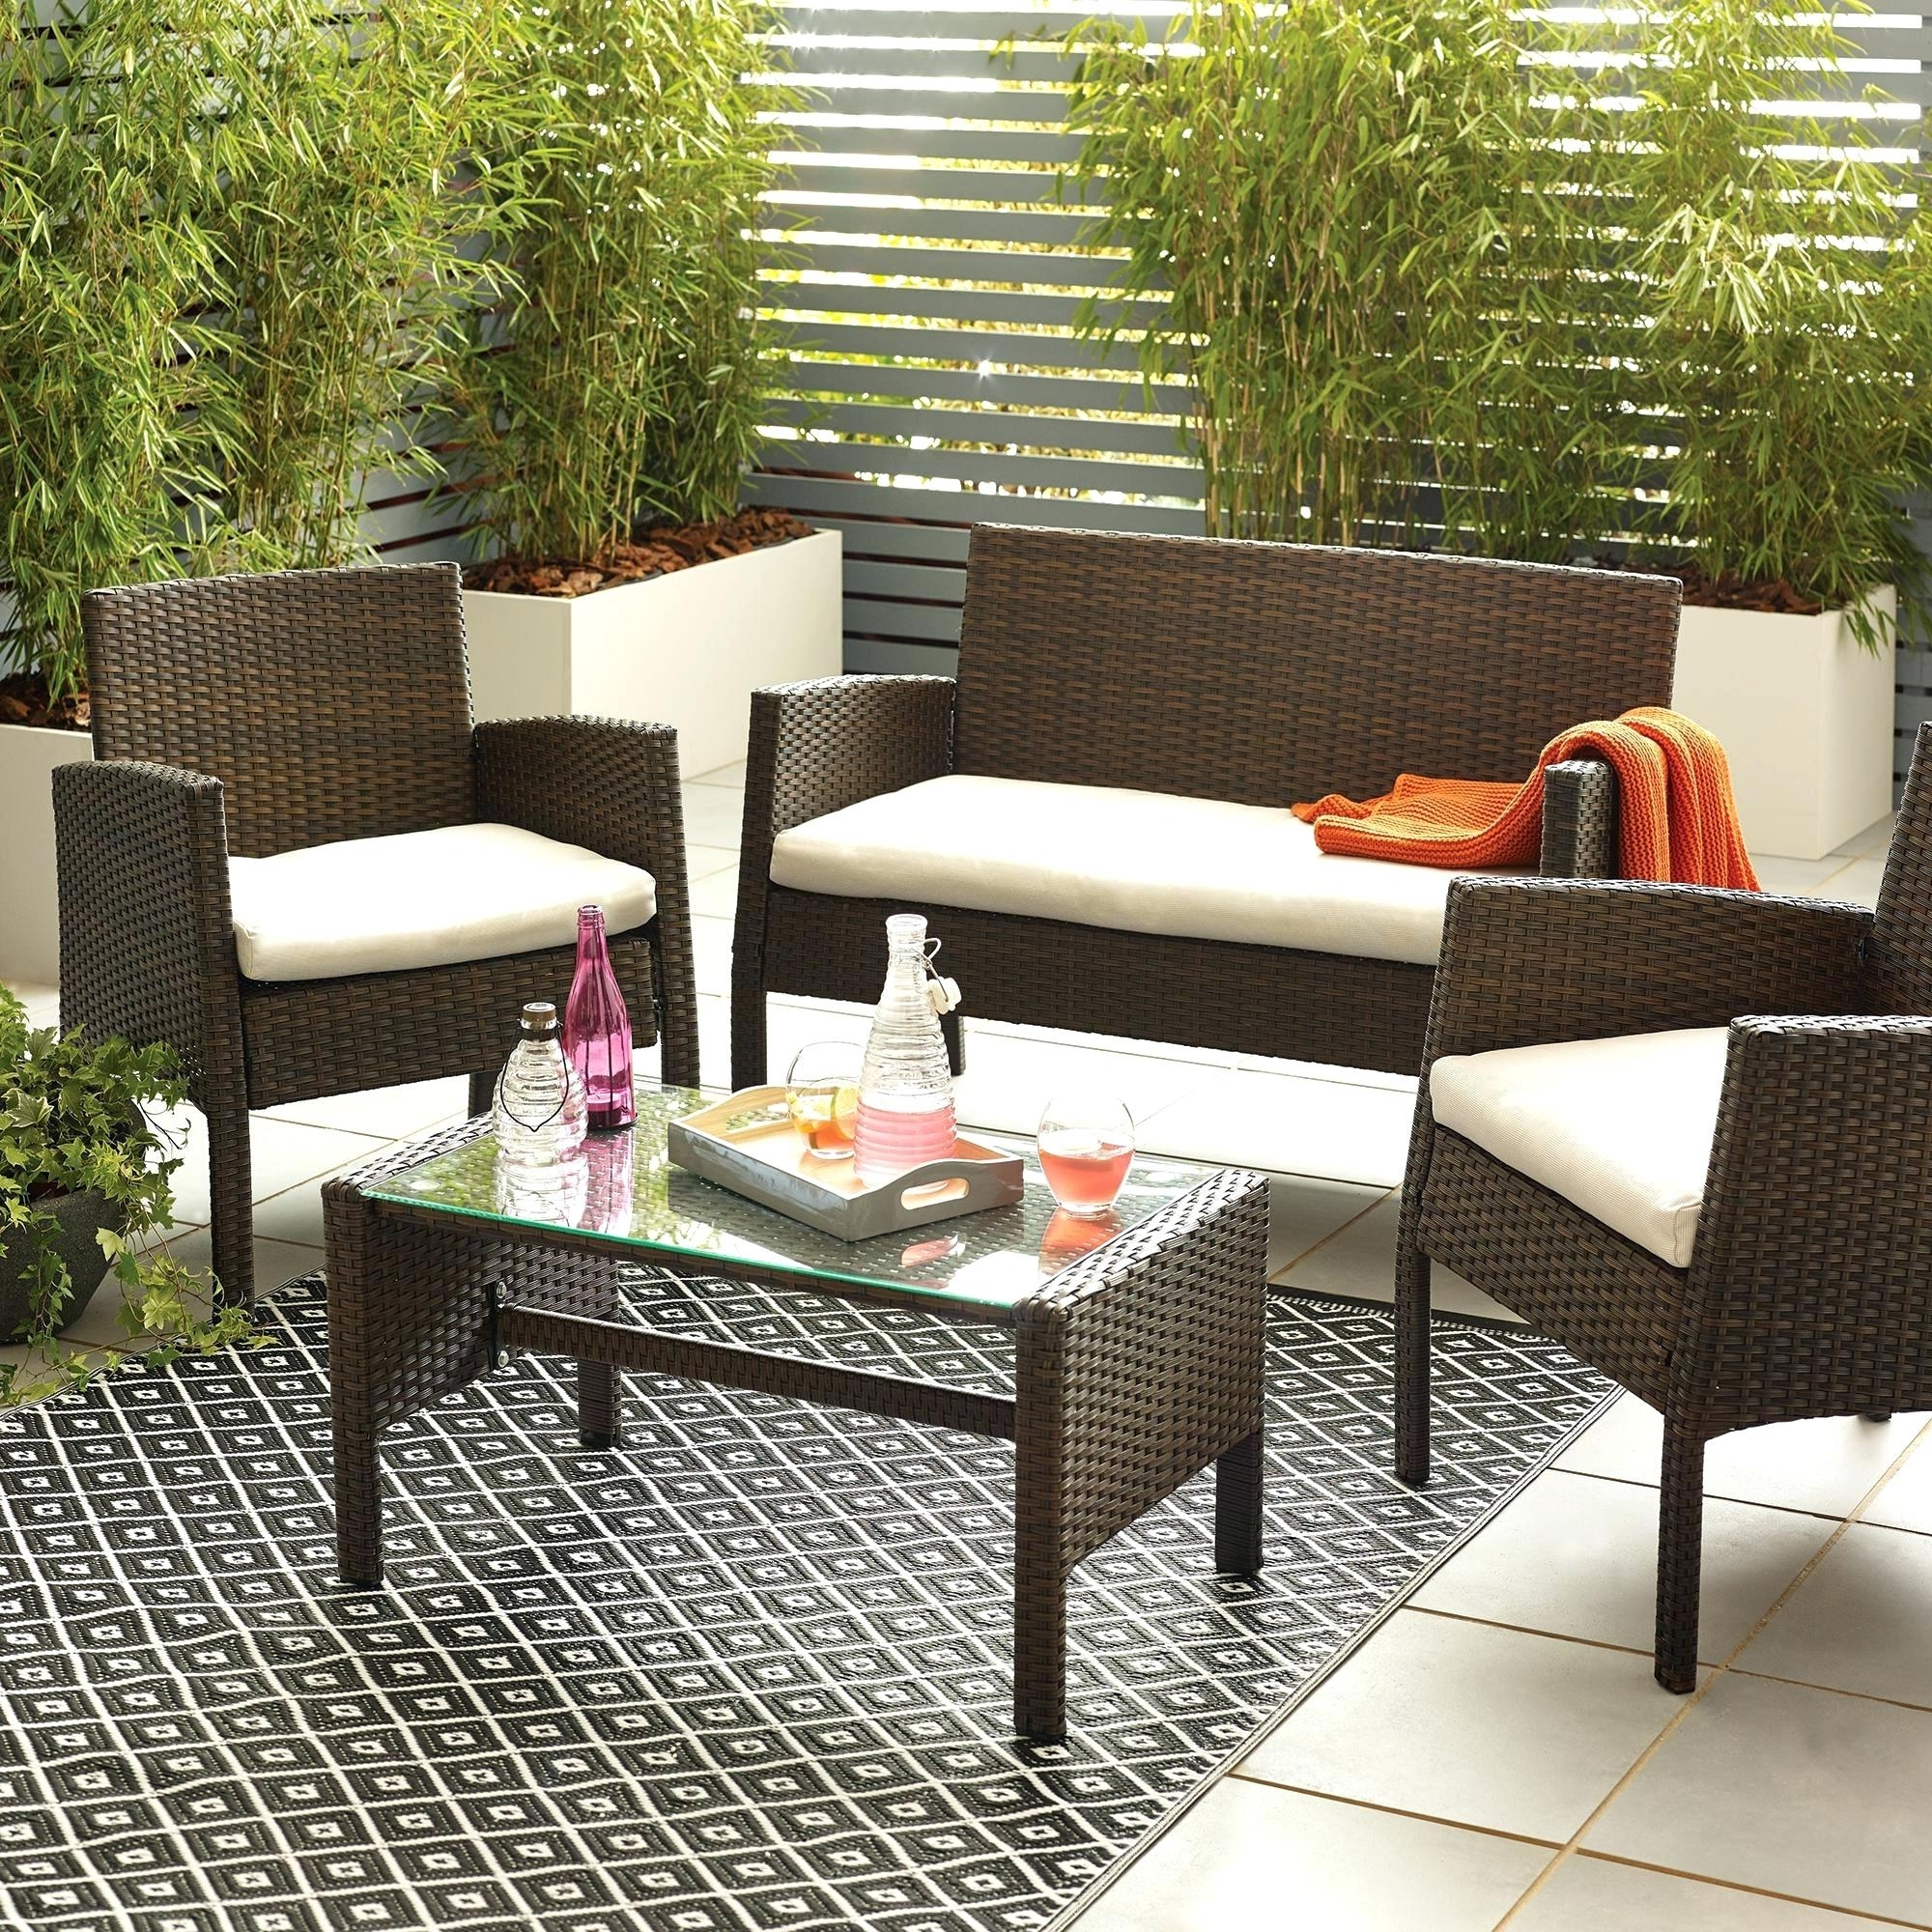 Best And Newest Wicker Sectional Patio Furniture Tags : Outdoor Furniture Inside Walmart Patio Furniture Conversation Sets (View 18 of 20)